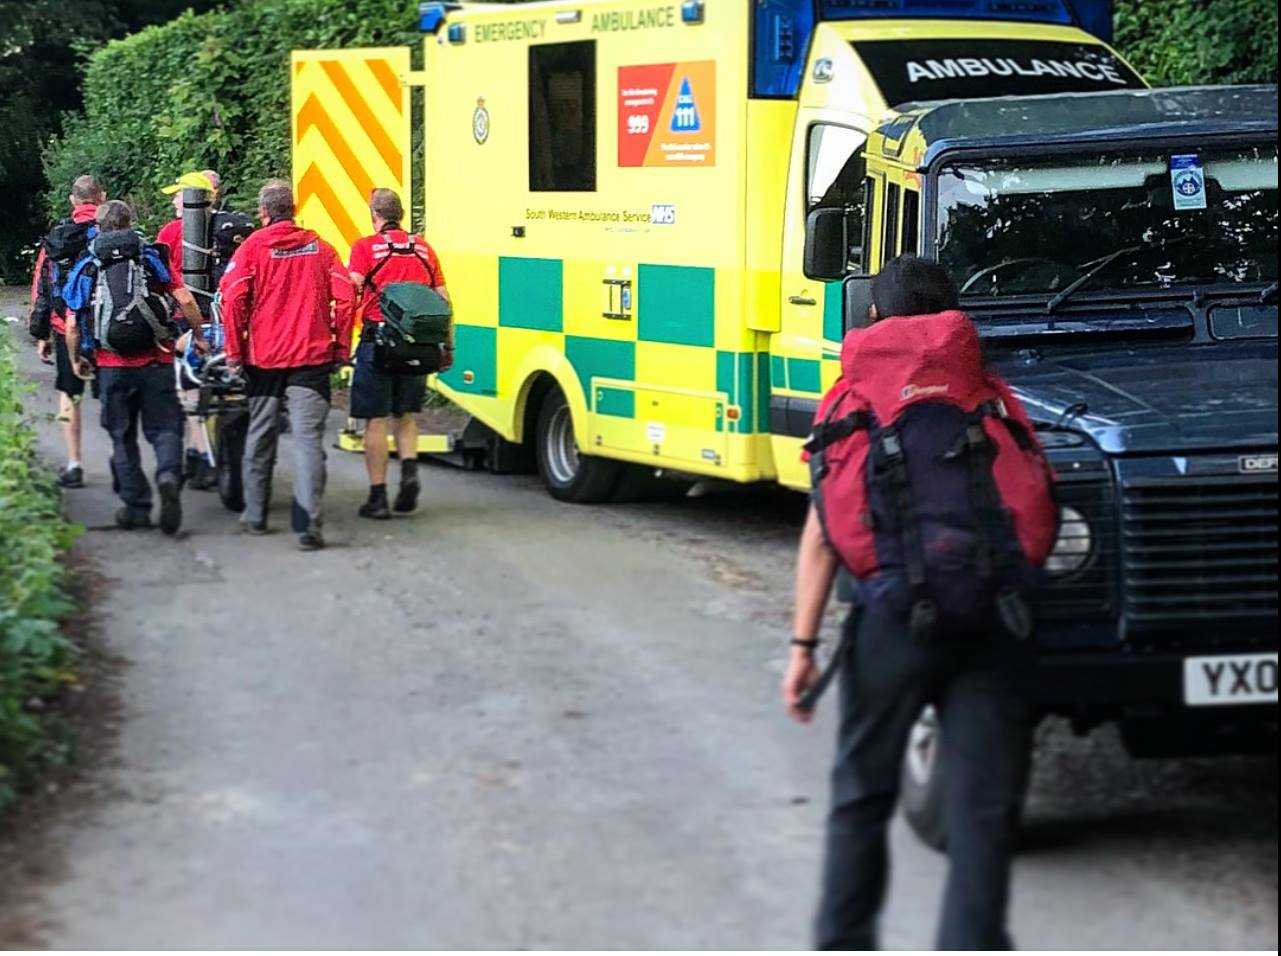 Dartmoor Rescue handing over a lady with a broken ankle to the ambulance at Lustleigh Cleeve.